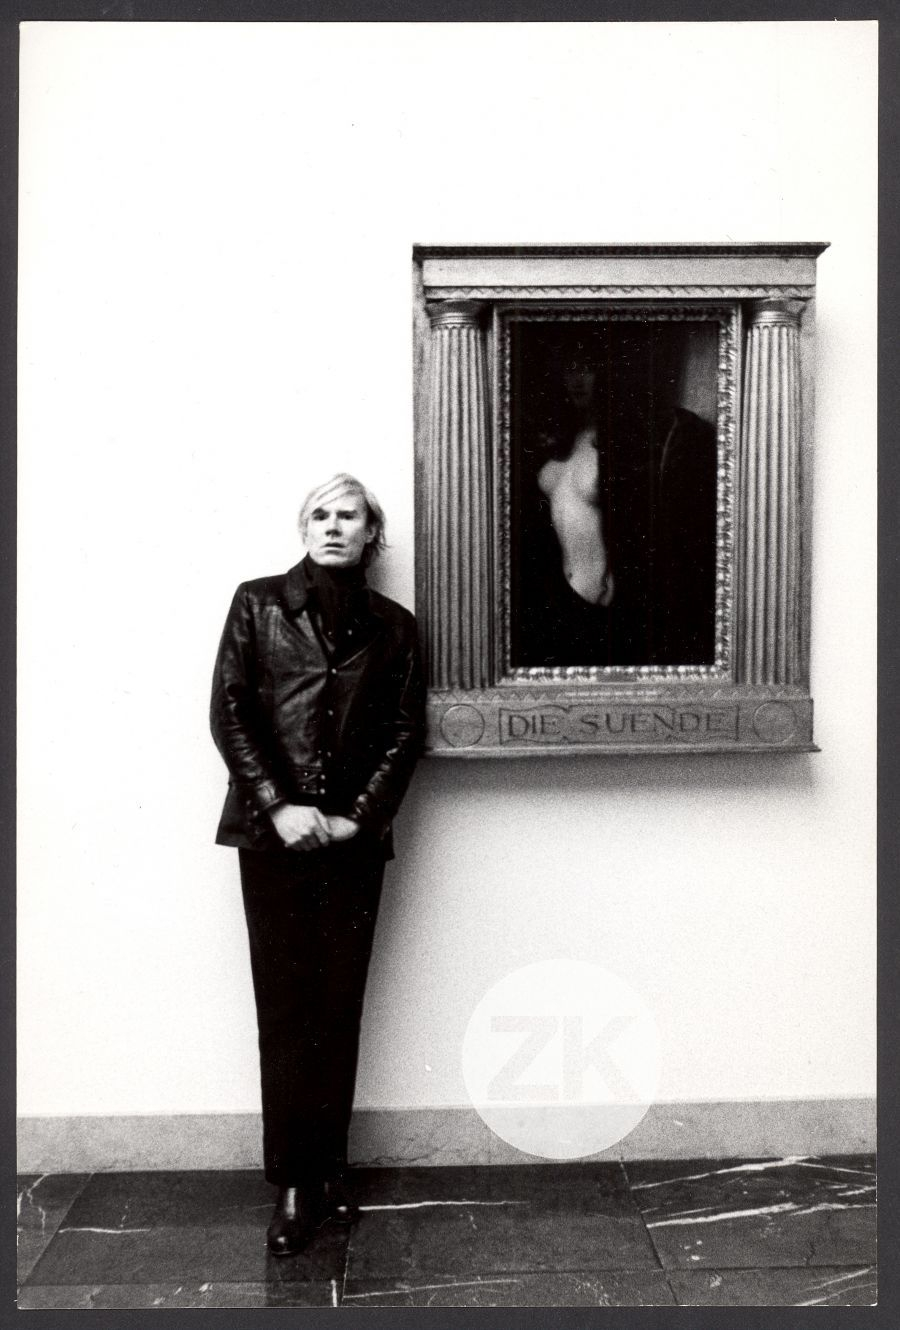 WITH FRANZ STUCK PAINTING AT MUNICH NEUE PINAKOTHEK - 1971